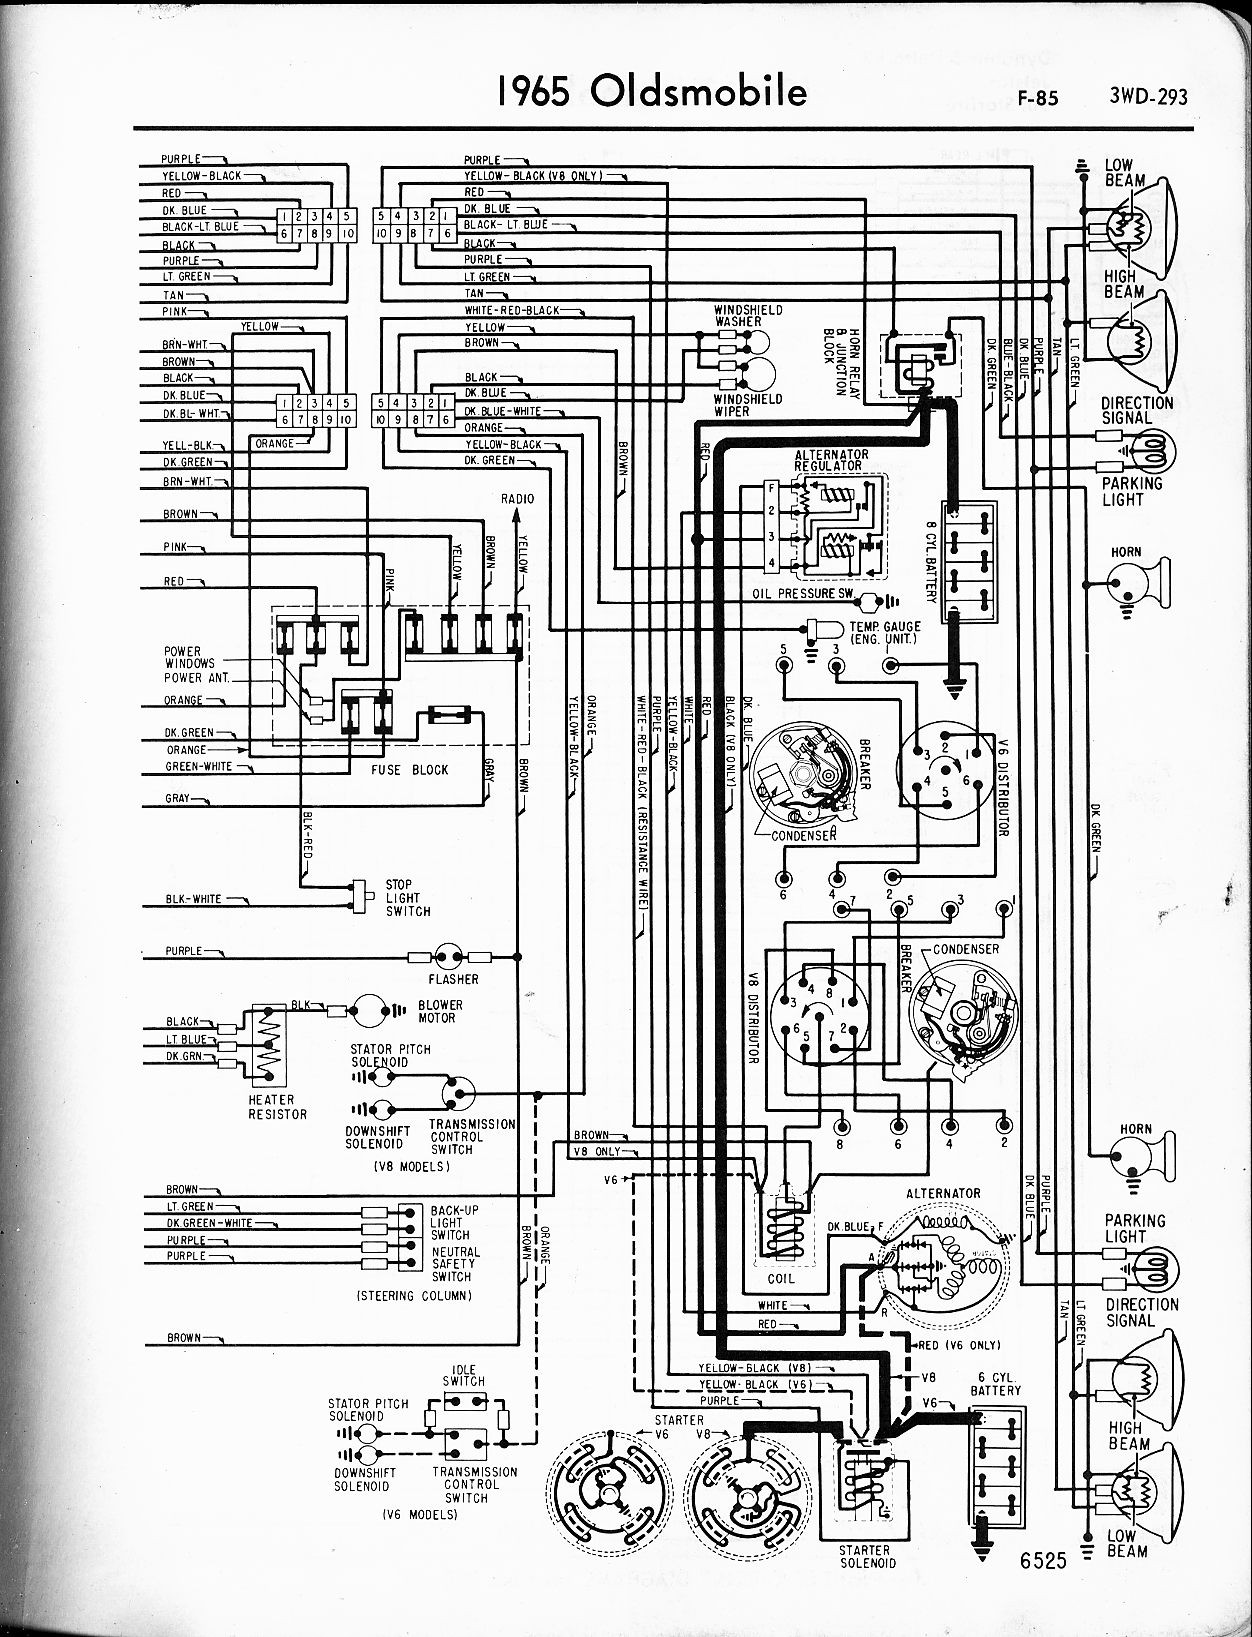 hight resolution of 1972 oldsmobile cutlass wiring harness wiring diagram1972 oldsmobile 88 wiring harness wiring diagram list1971 oldsmobile 88